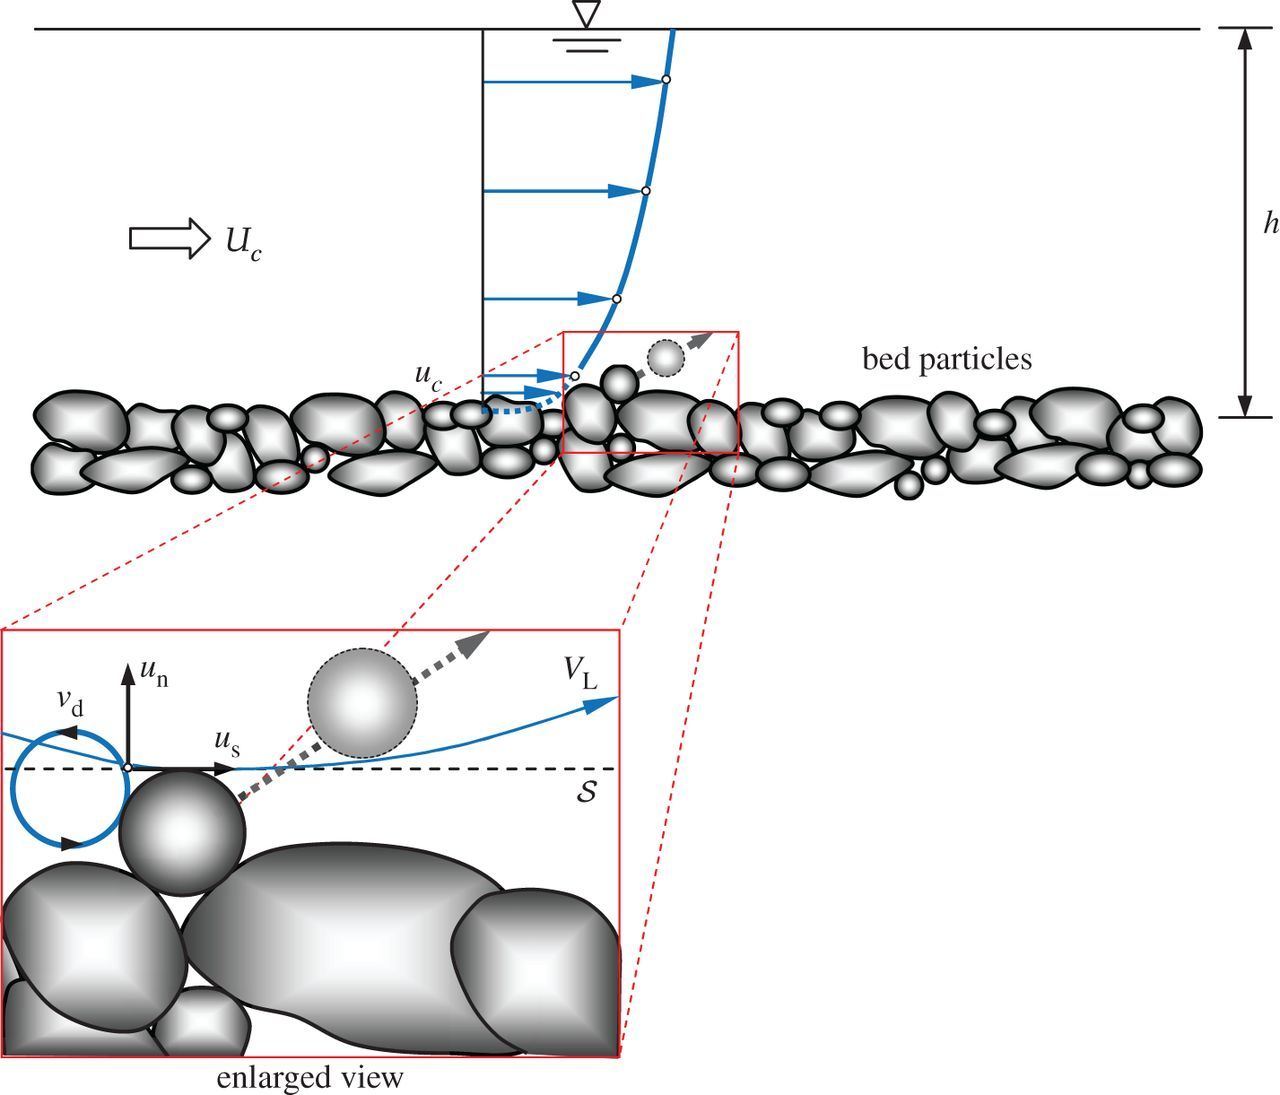 Origin of the scaling laws of sediment transport